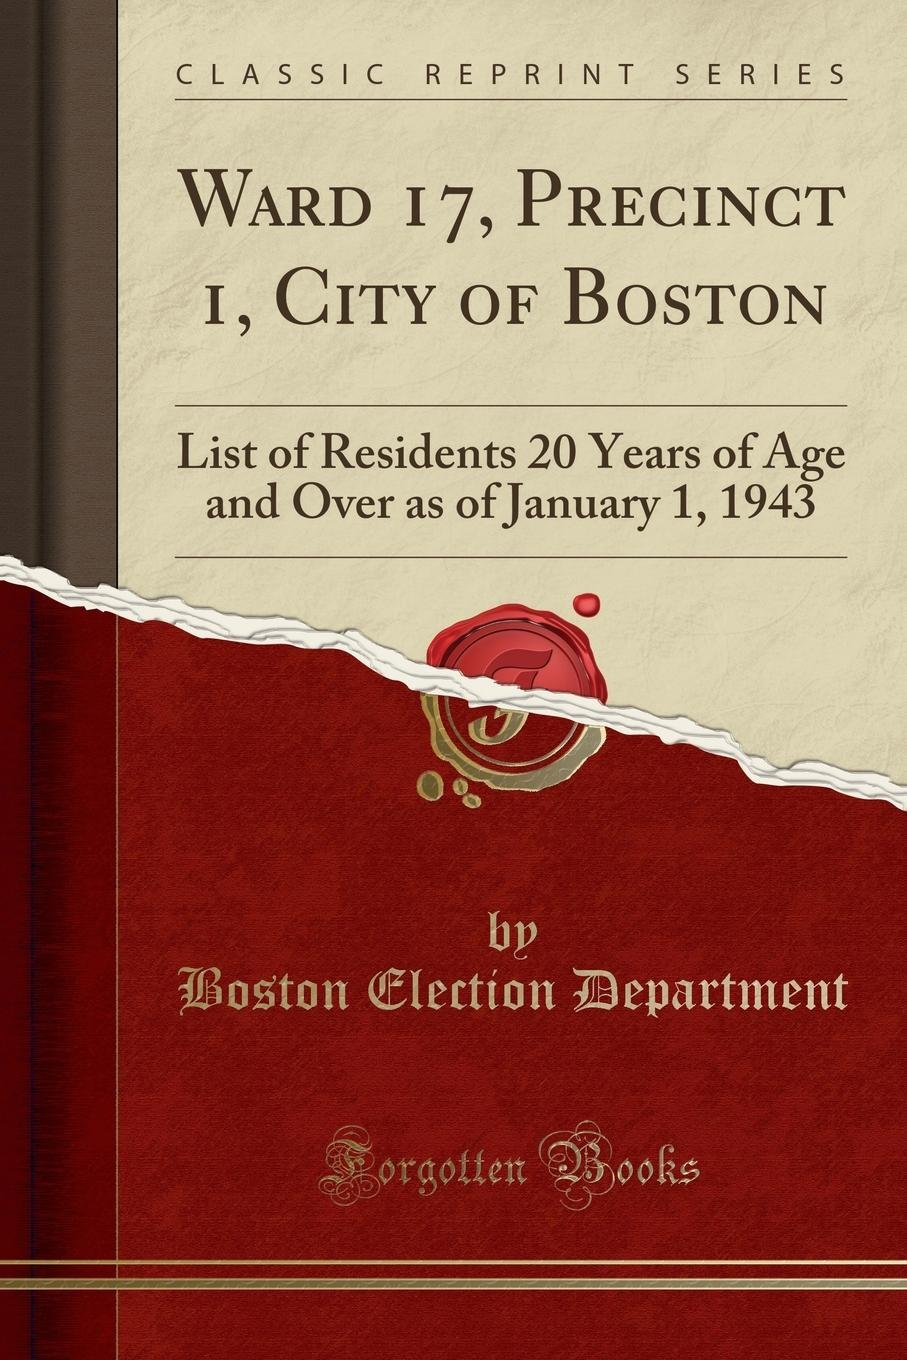 Read Online Ward 17, Precinct 1, City of Boston: List of Residents 20 Years of Age and Over as of January 1, 1943 (Classic Reprint) ebook